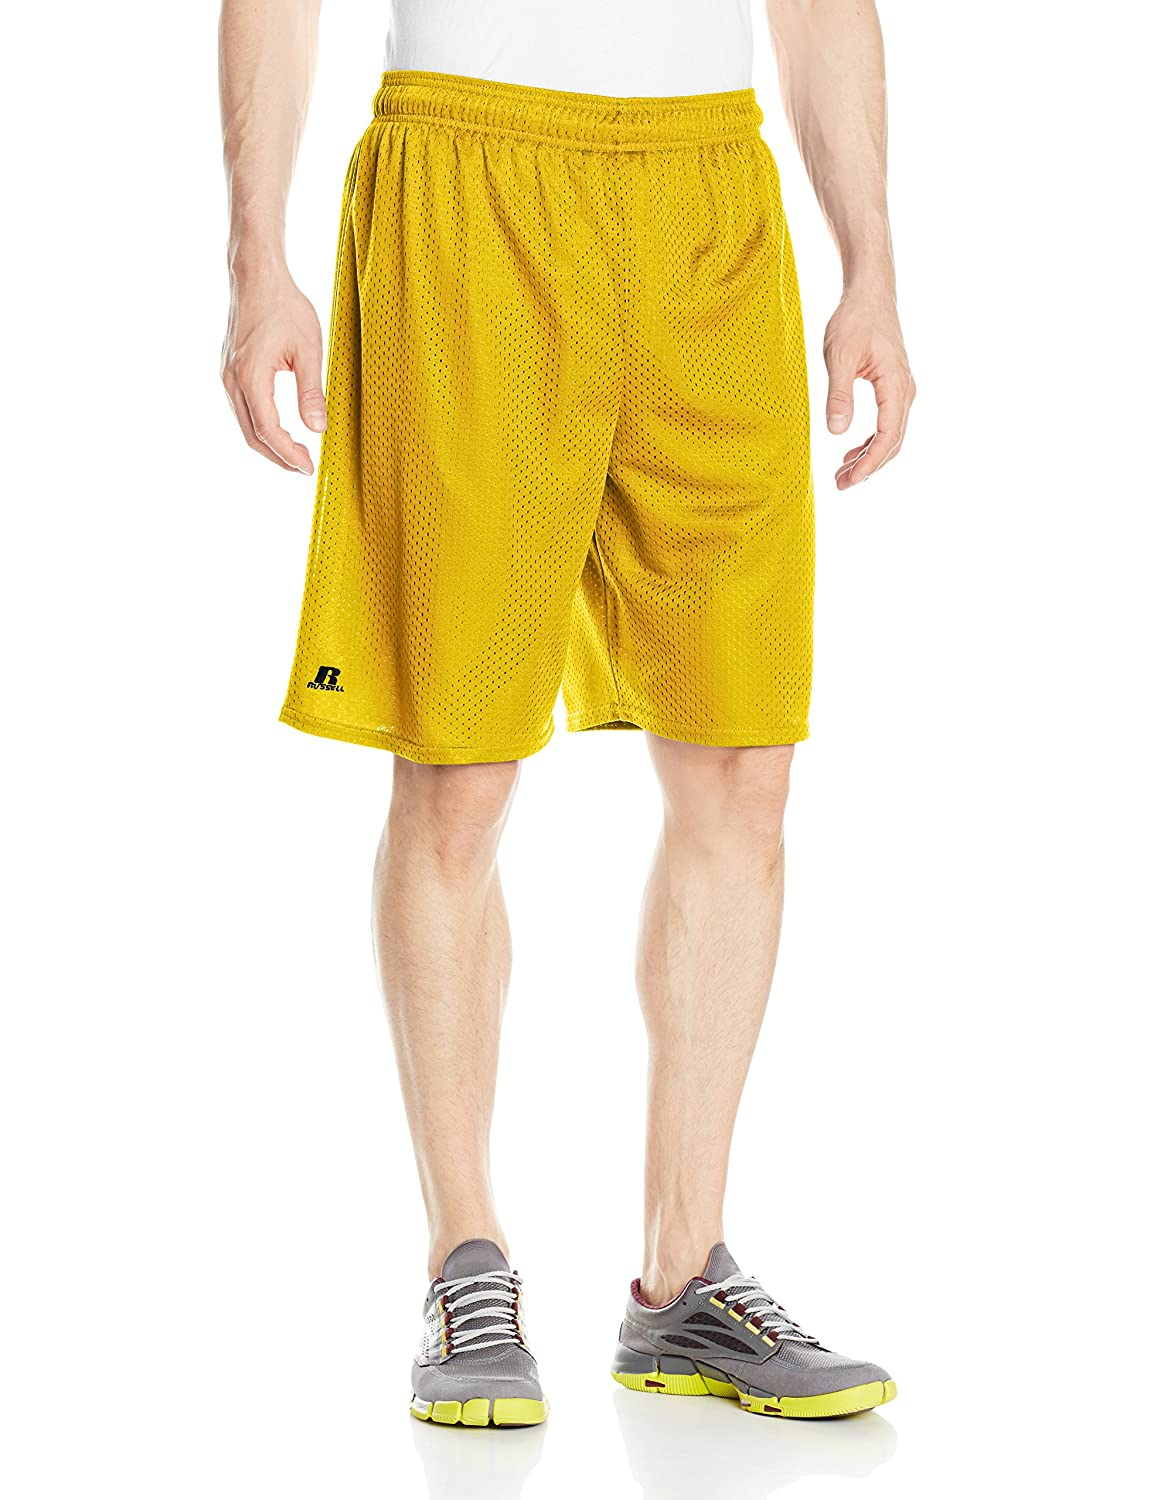 Russell Athletic Men's Mesh Shorts (No Pockets) 659AFMK